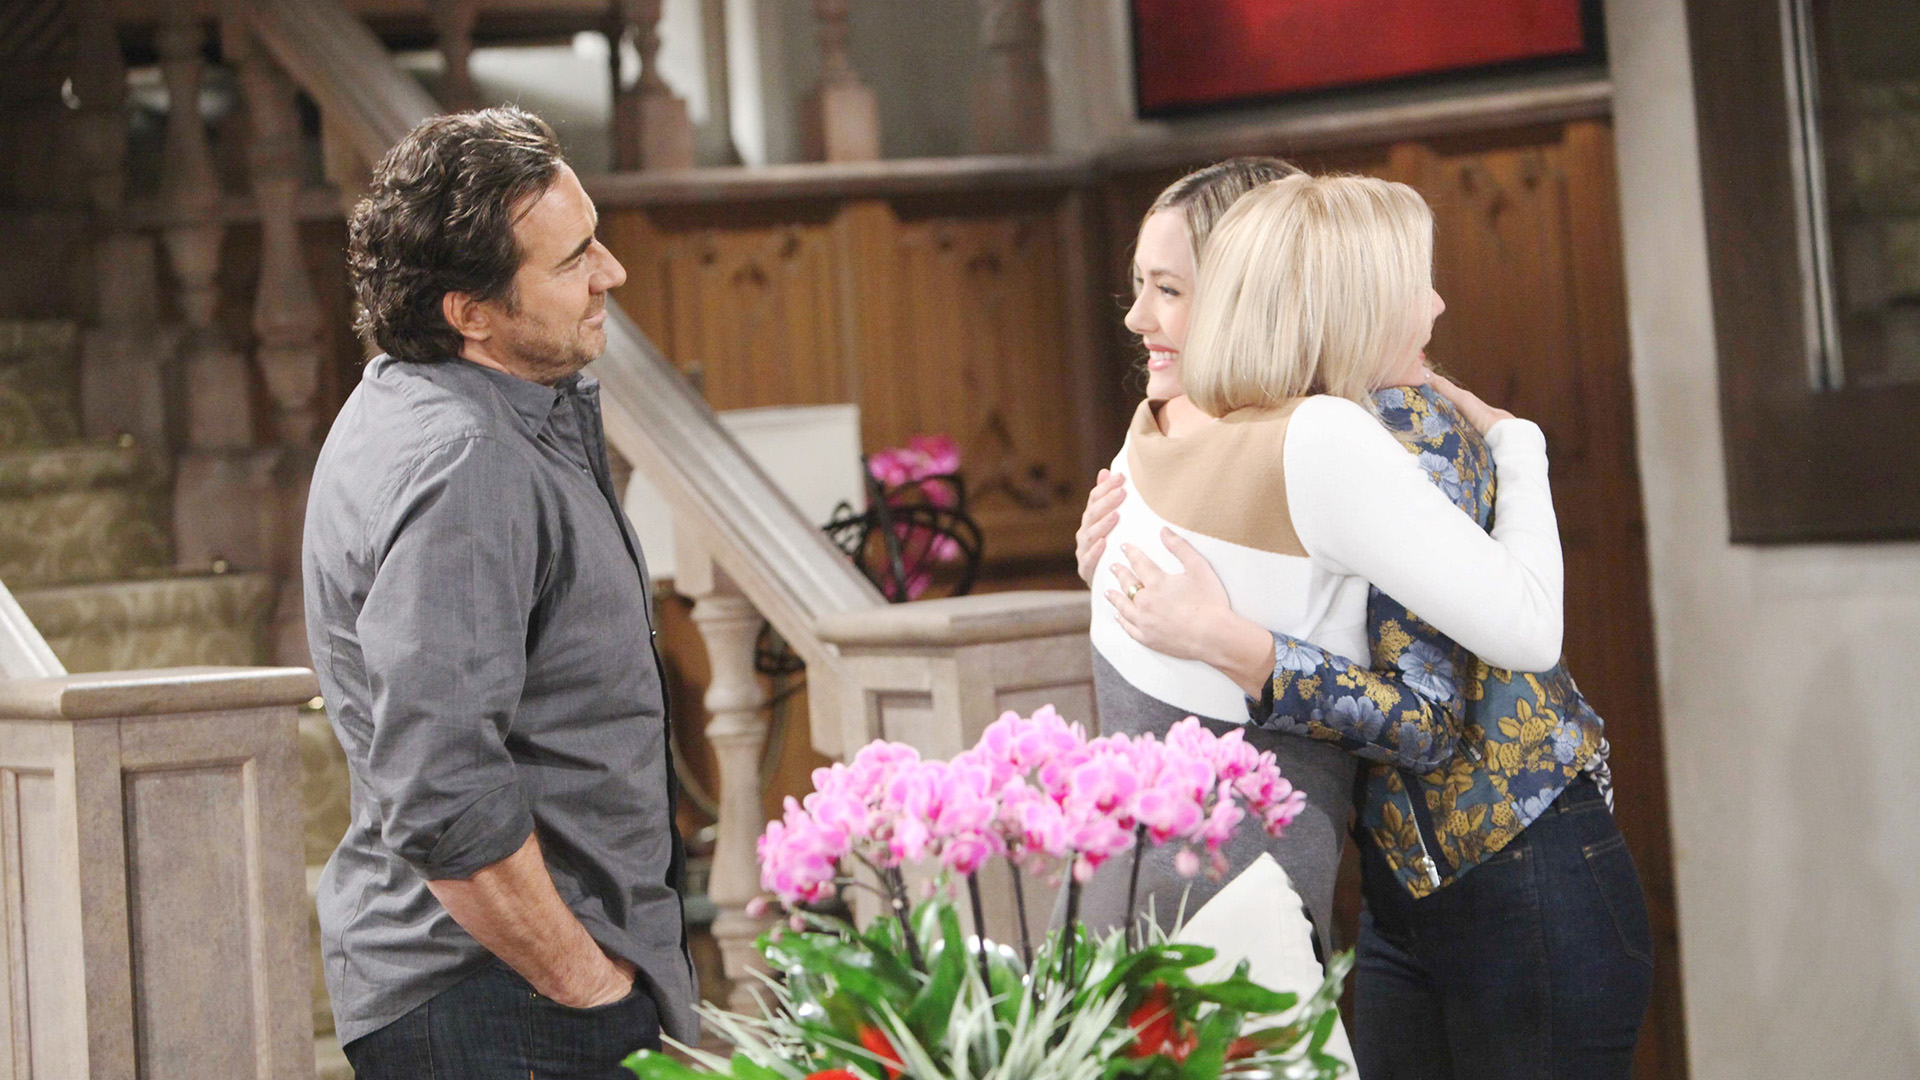 Ridge surprises Brooke by bringing her daughter, Hope, back to Los Angeles.